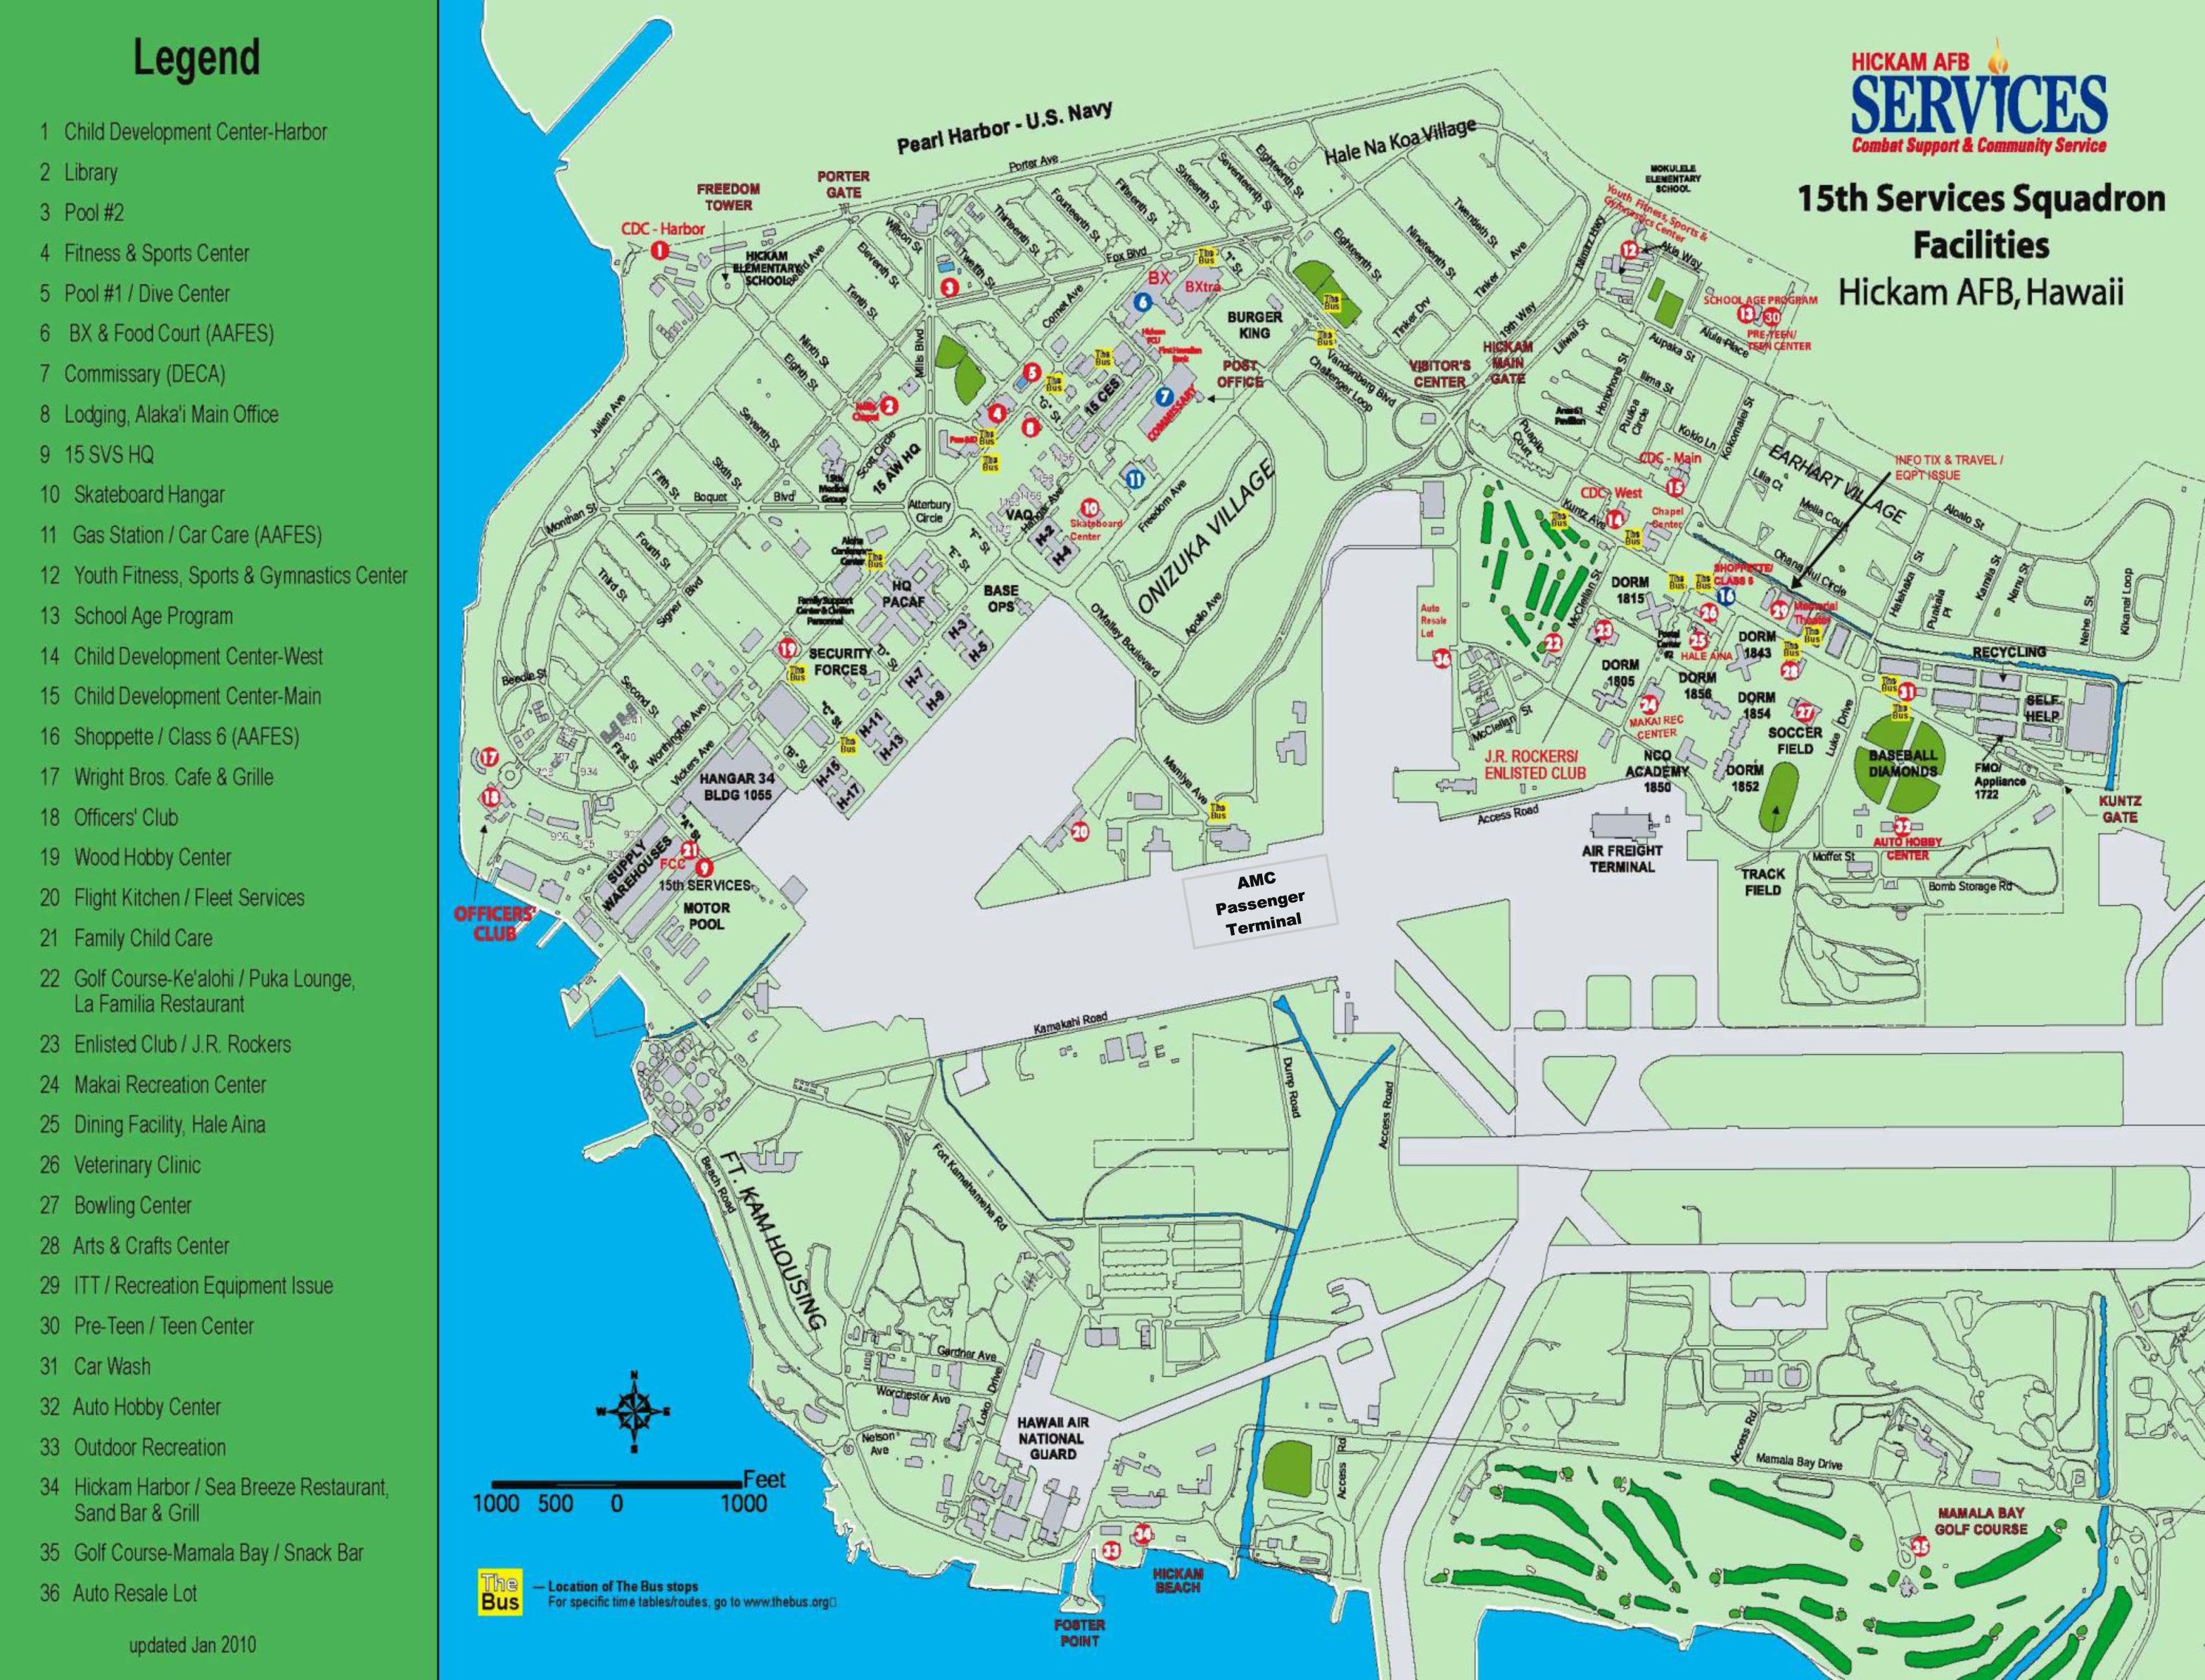 Marine Corps Base Hawaii Map.Hickam Air Force Base Hawaii Map Joint Base Pearl Harbor Hickam